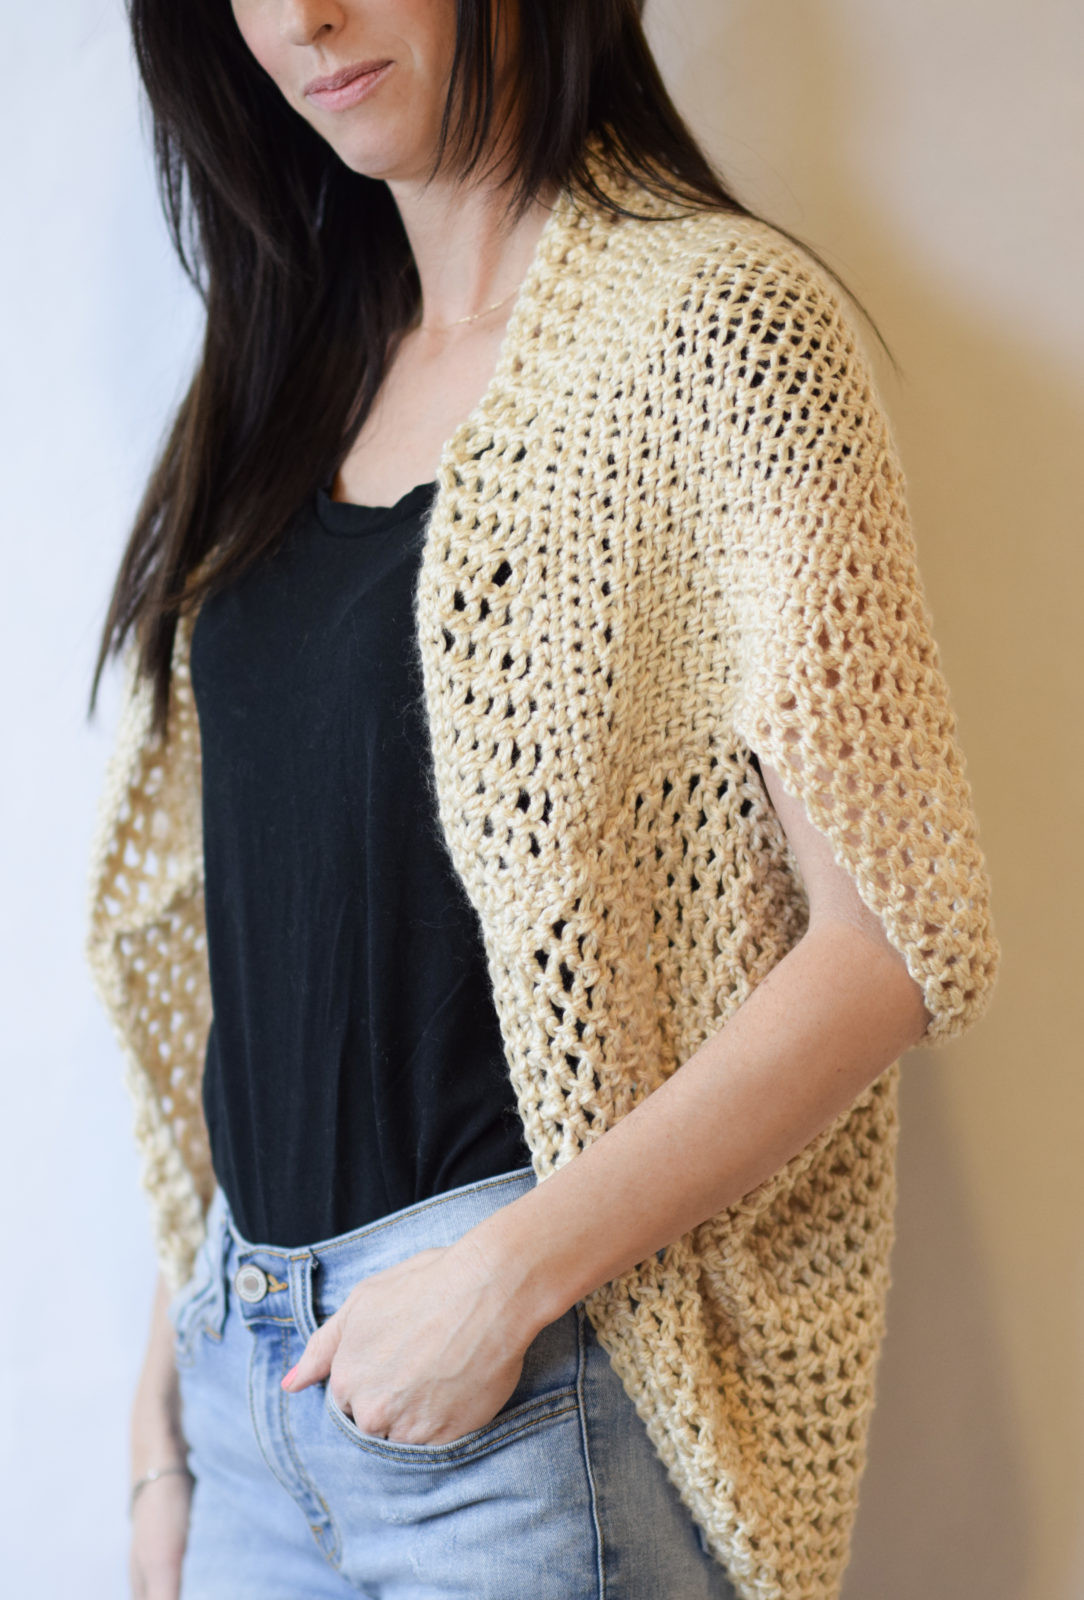 Mod Mesh Honey Blanket Sweater – Mama In A Stitch